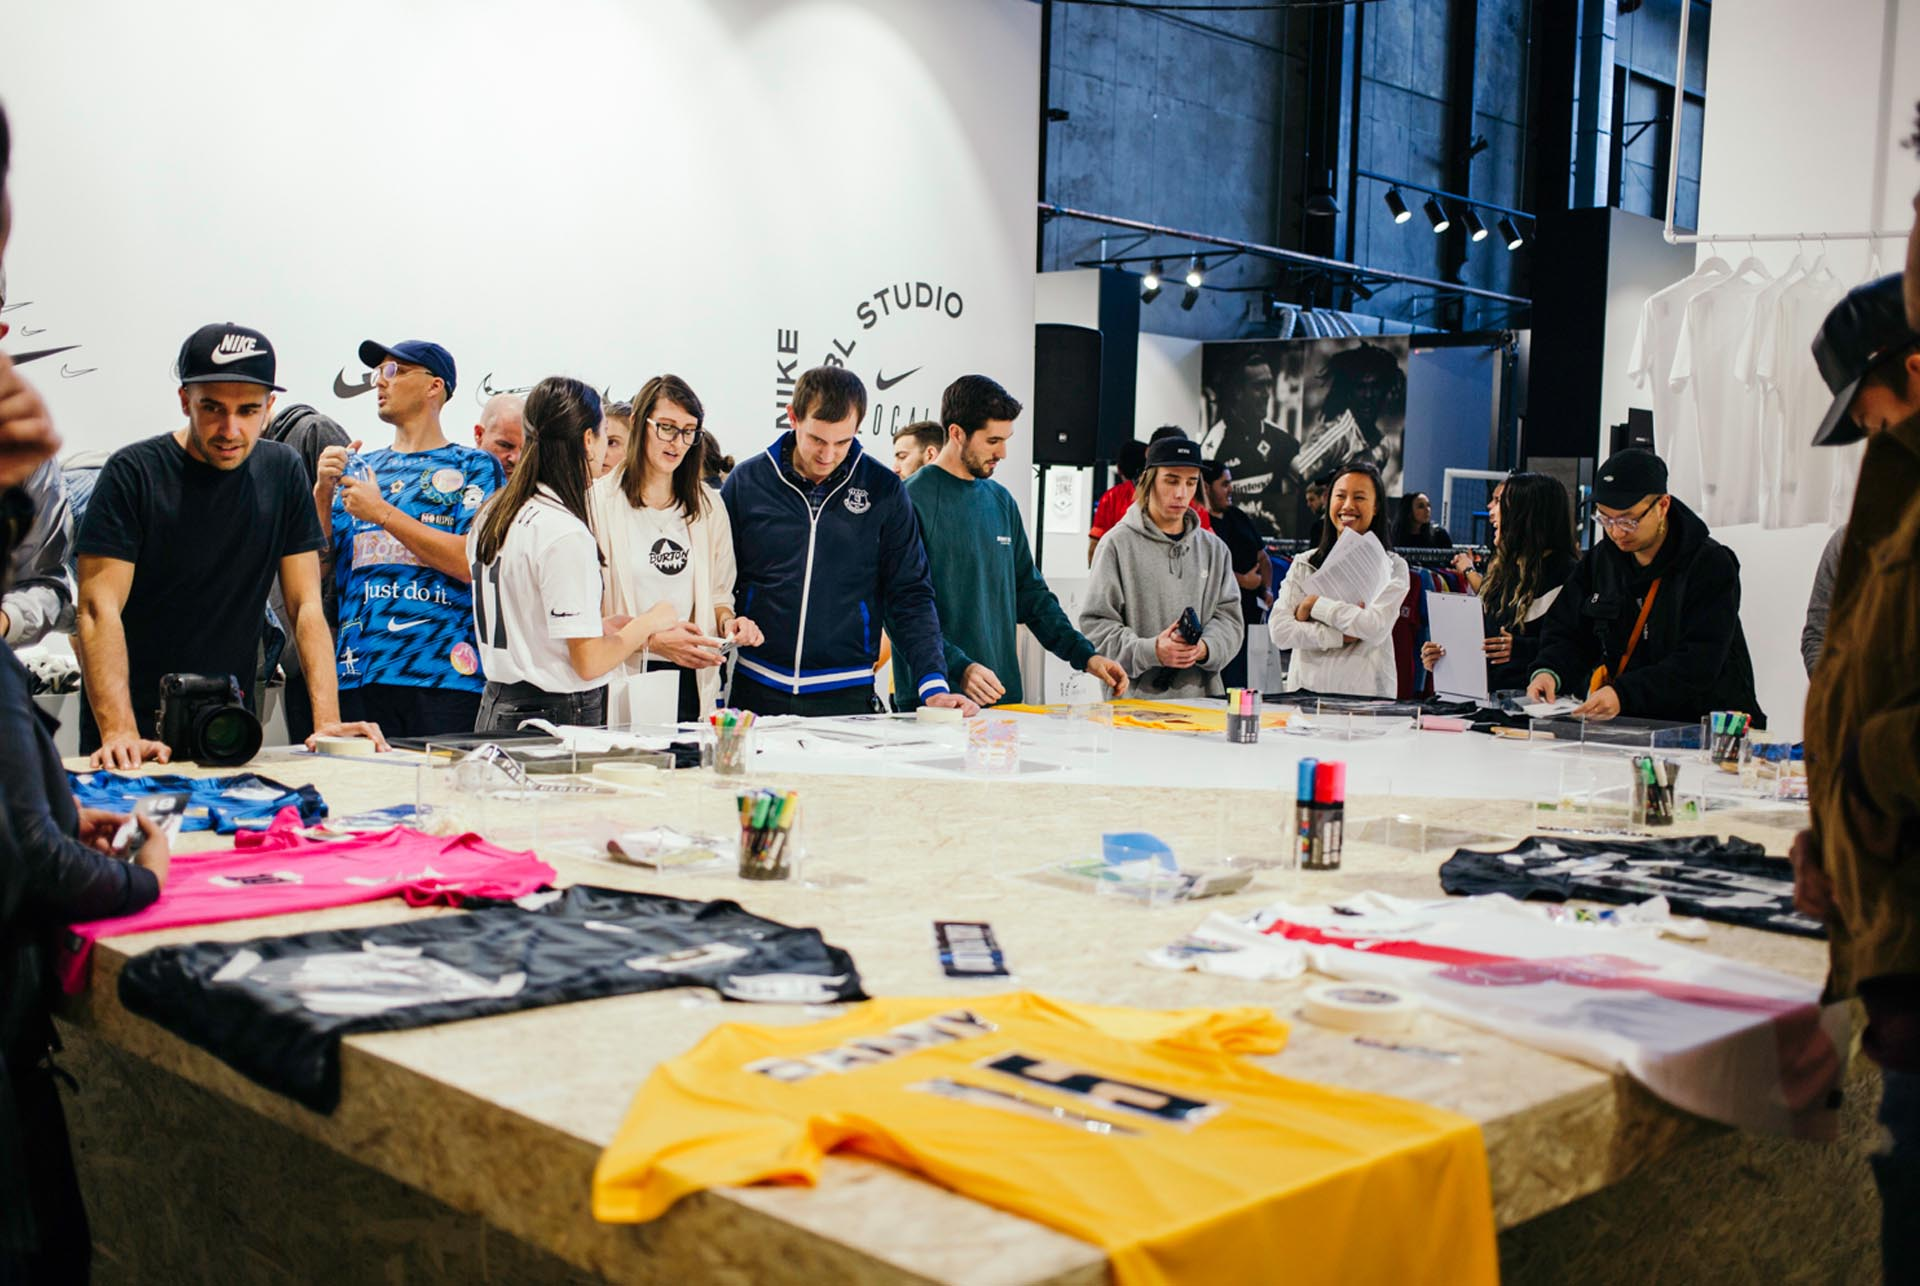 22-local-fc-nike-jersey-workshop.jpg